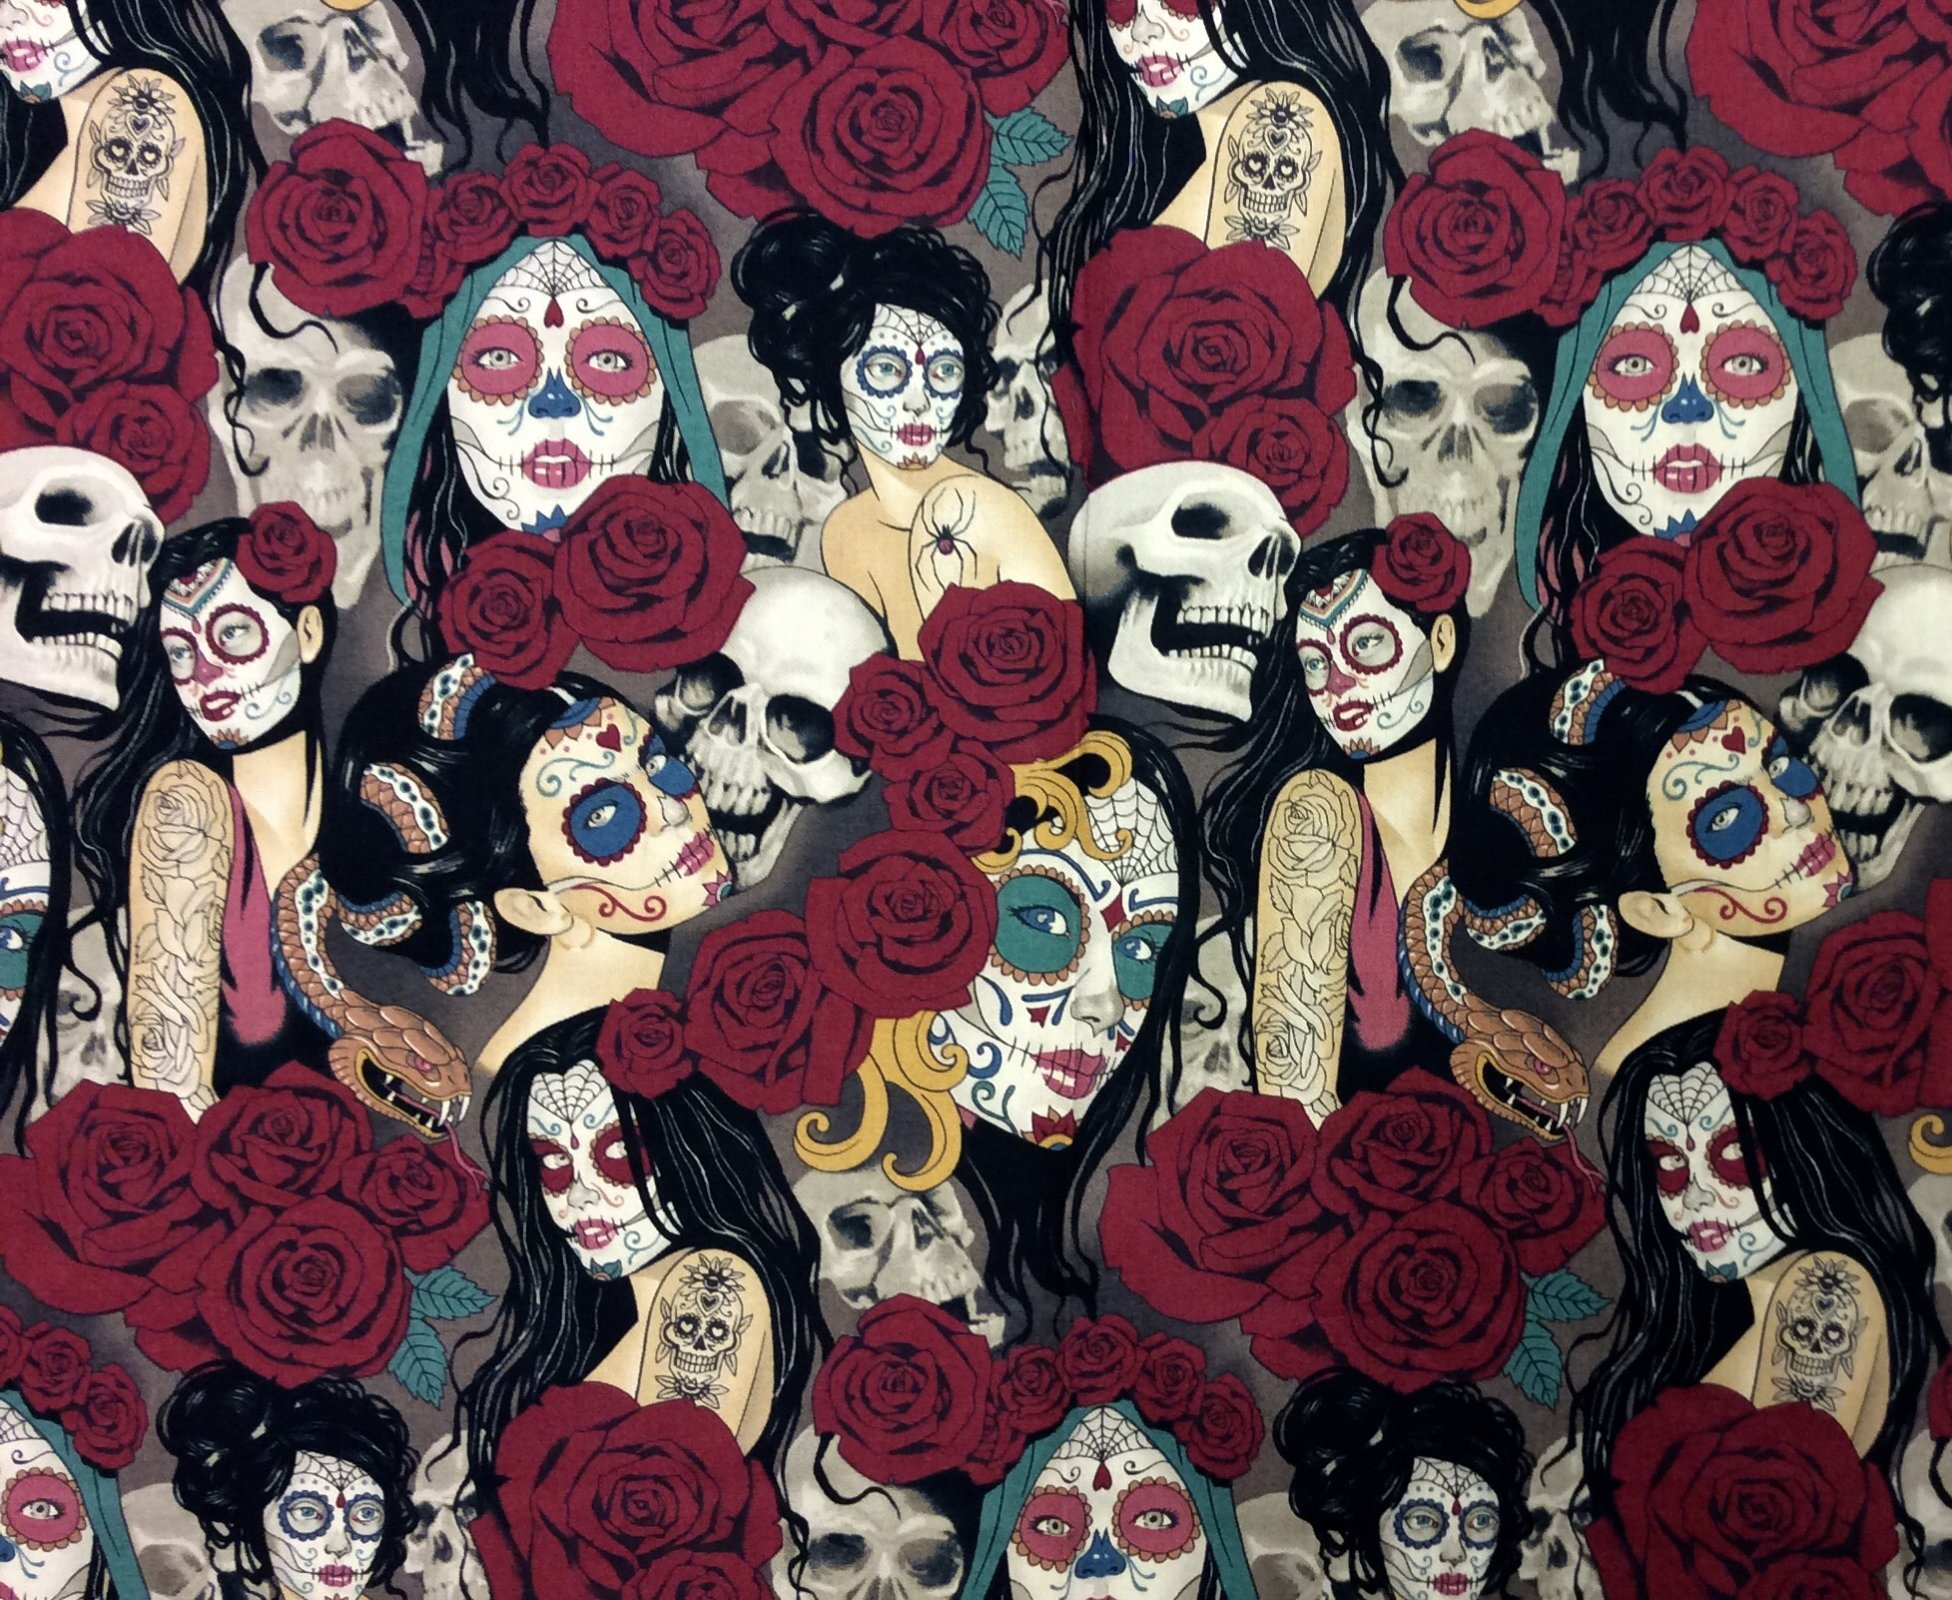 Las Elegantes Nocturna Sexy Pin Up Girls Goth Steampunk Skull Tattoo Cotton Quilt Fabric AH275